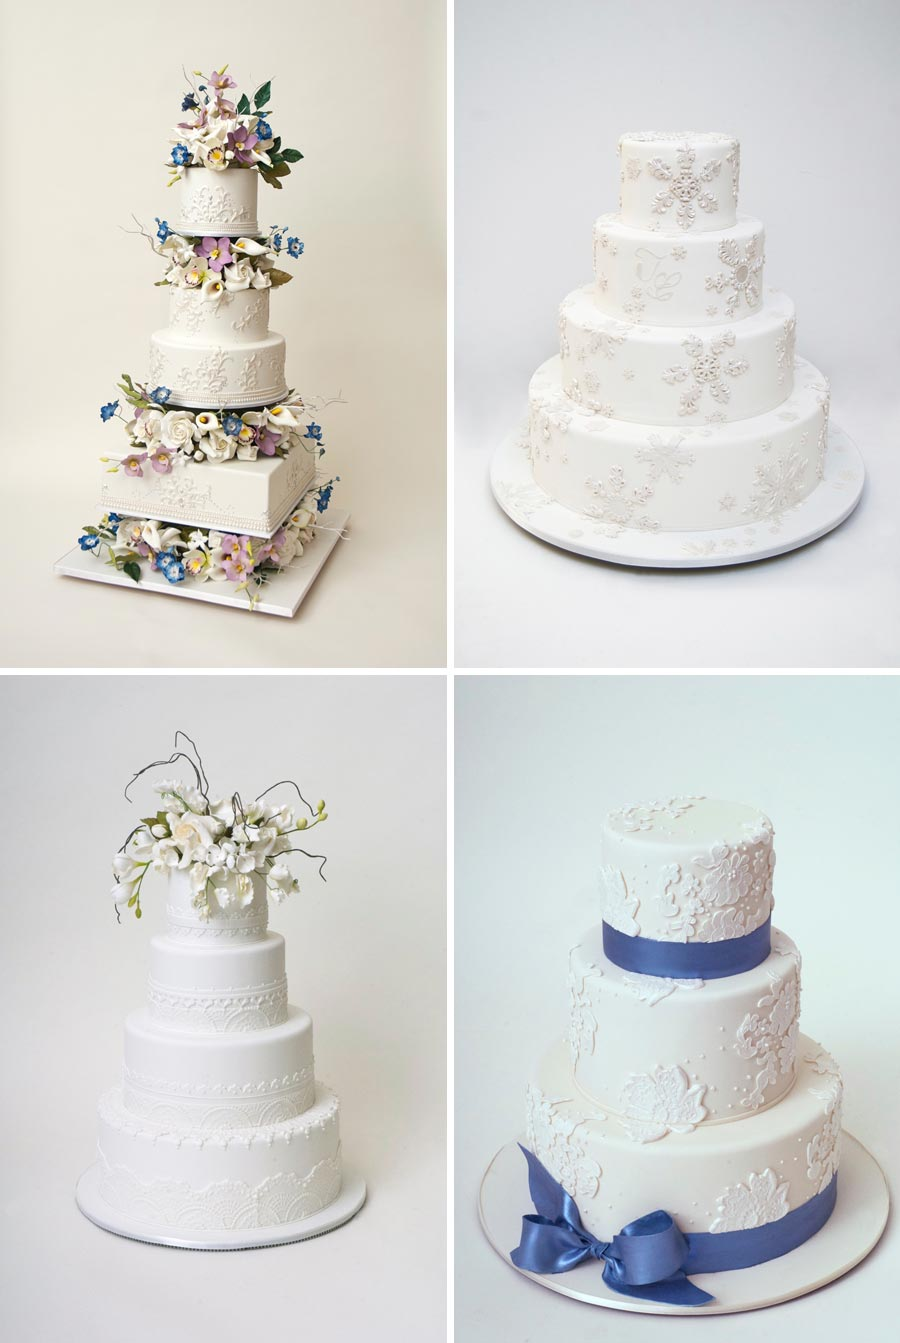 V21 Expert Style Tips Winter Holiday Cake Tips By Ron Ben - Ben Israel Wedding Cakes